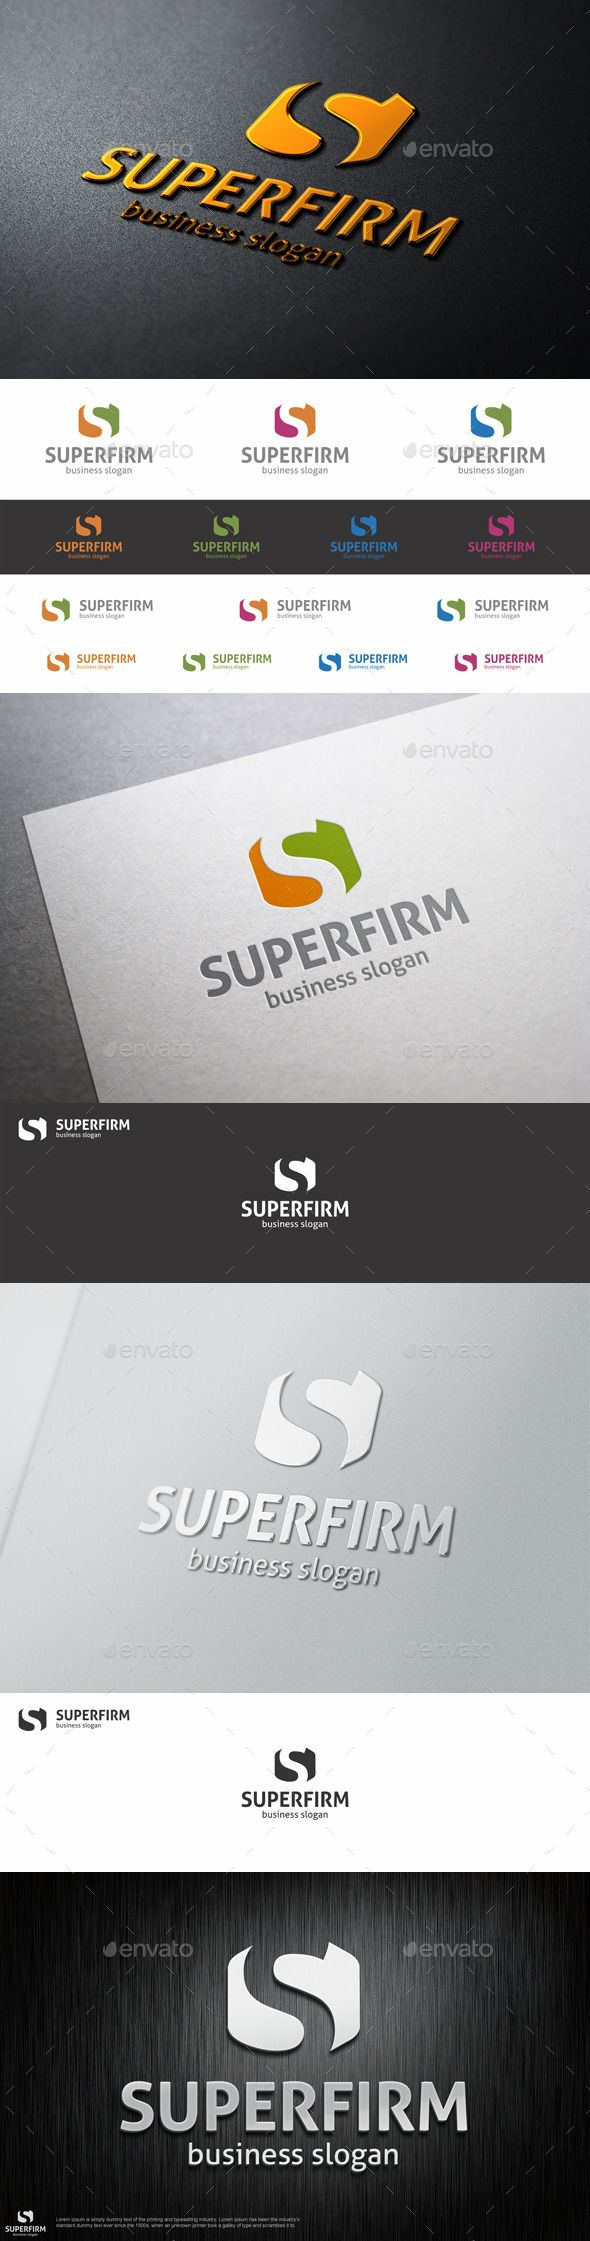 Super Firm S Letter - Logo Design Template Vector #logotype Download it here: http://graphicriver.net/item/super-firm-s-logo-letter/10009109?s_rank=1109?ref=nexion